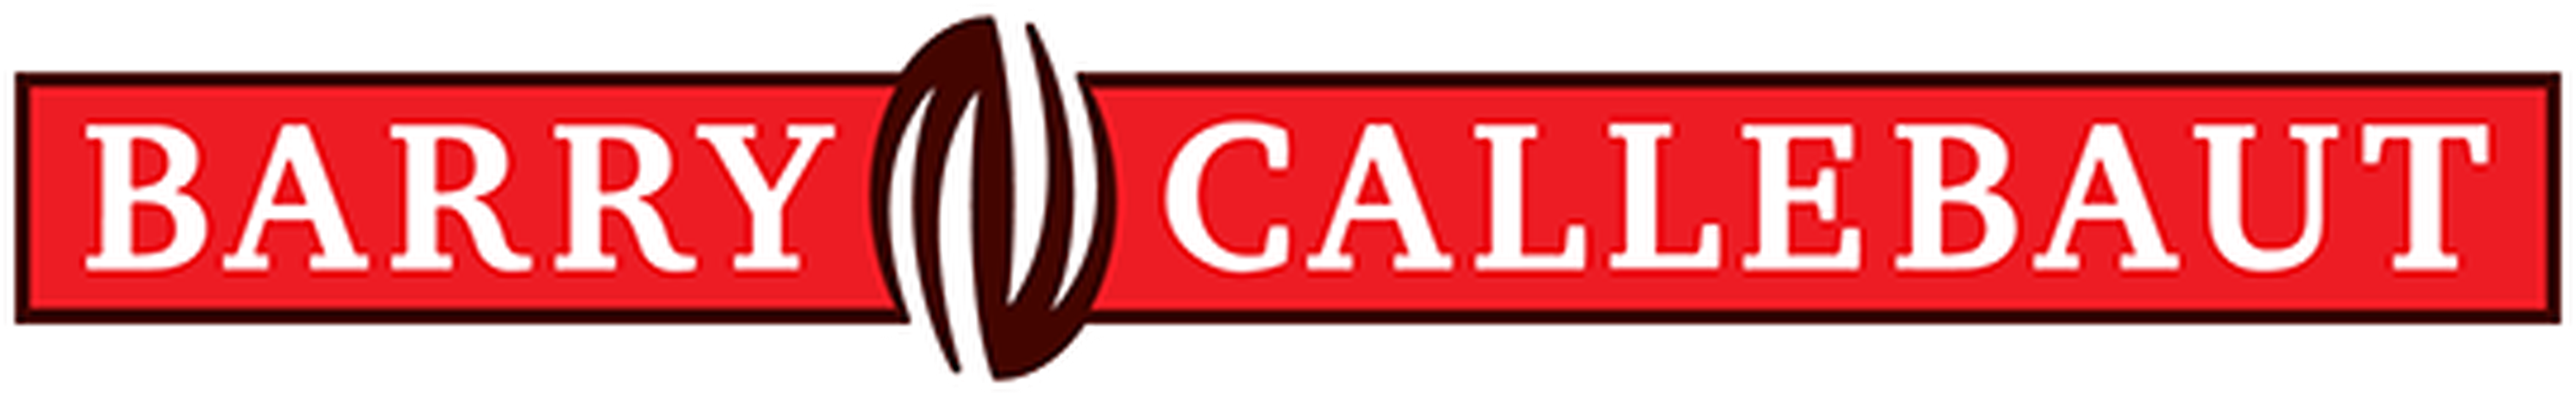 logo-barry-callebaut.png.960x540_q85_crop-scale_upscale